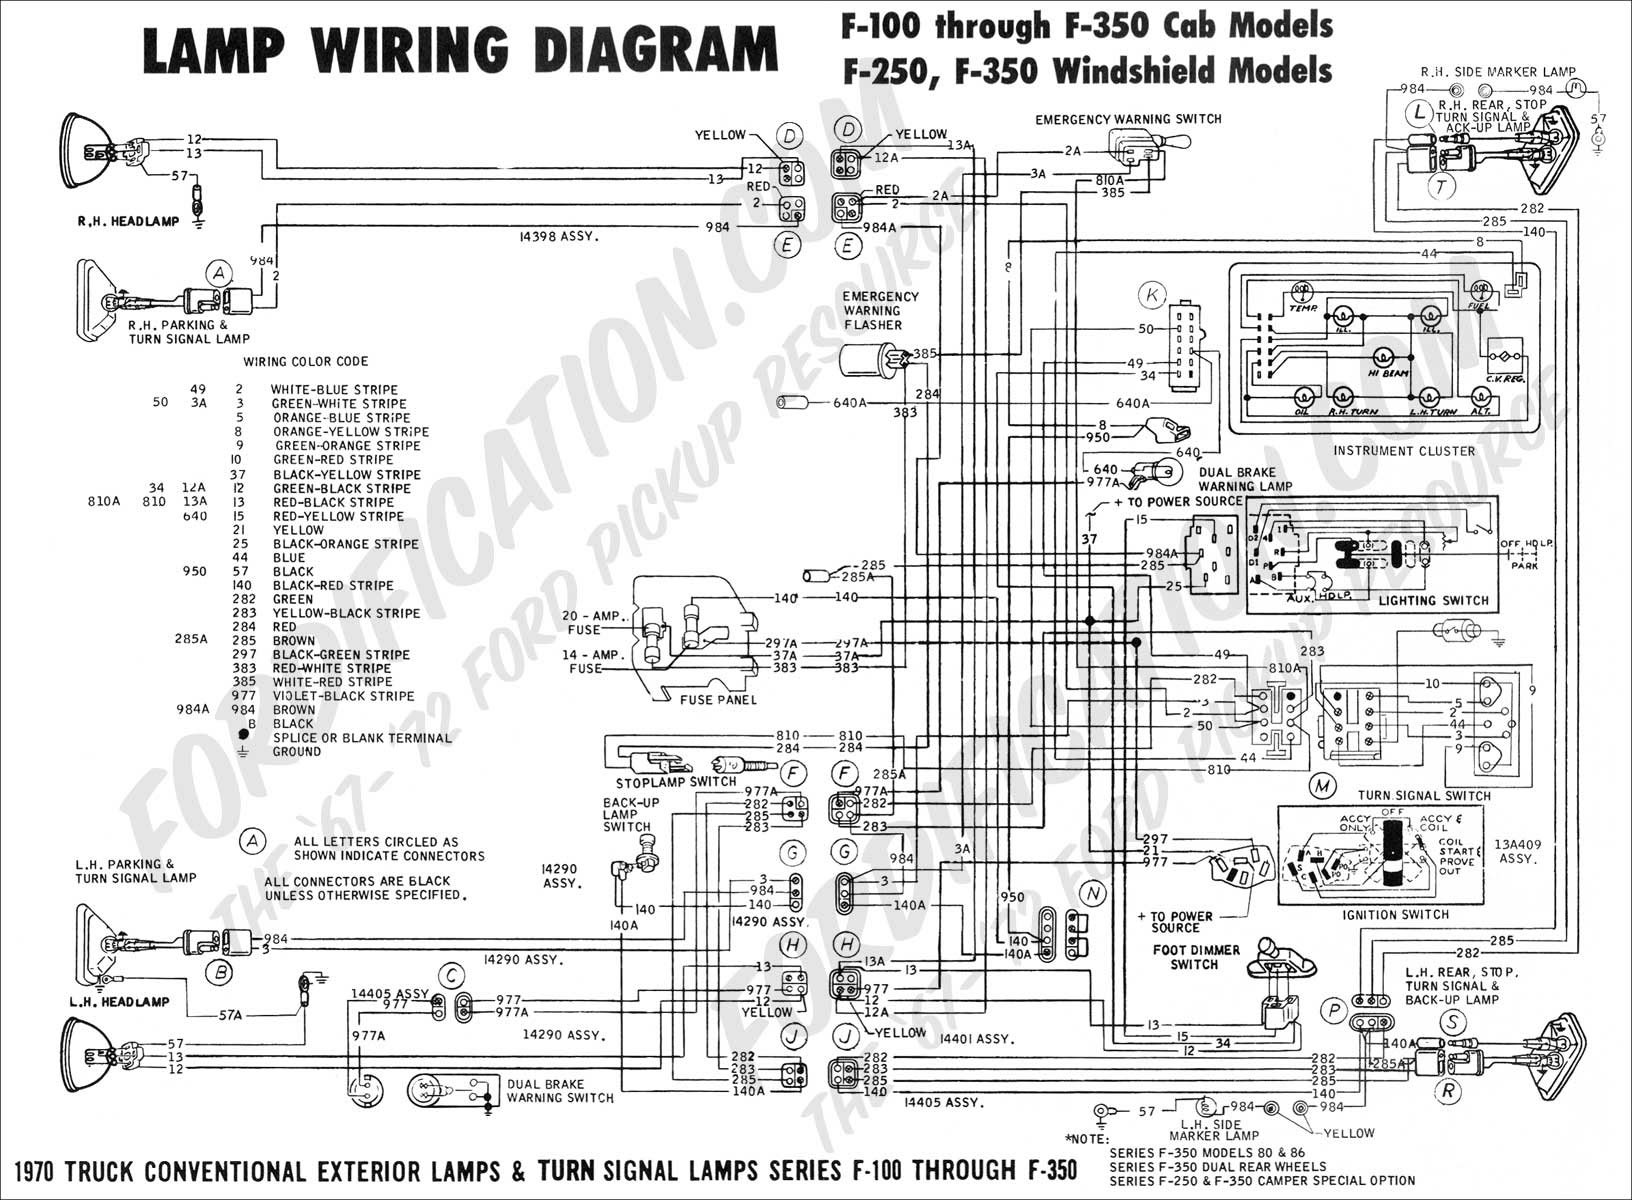 1990 Ford F250 Wiring Diagram